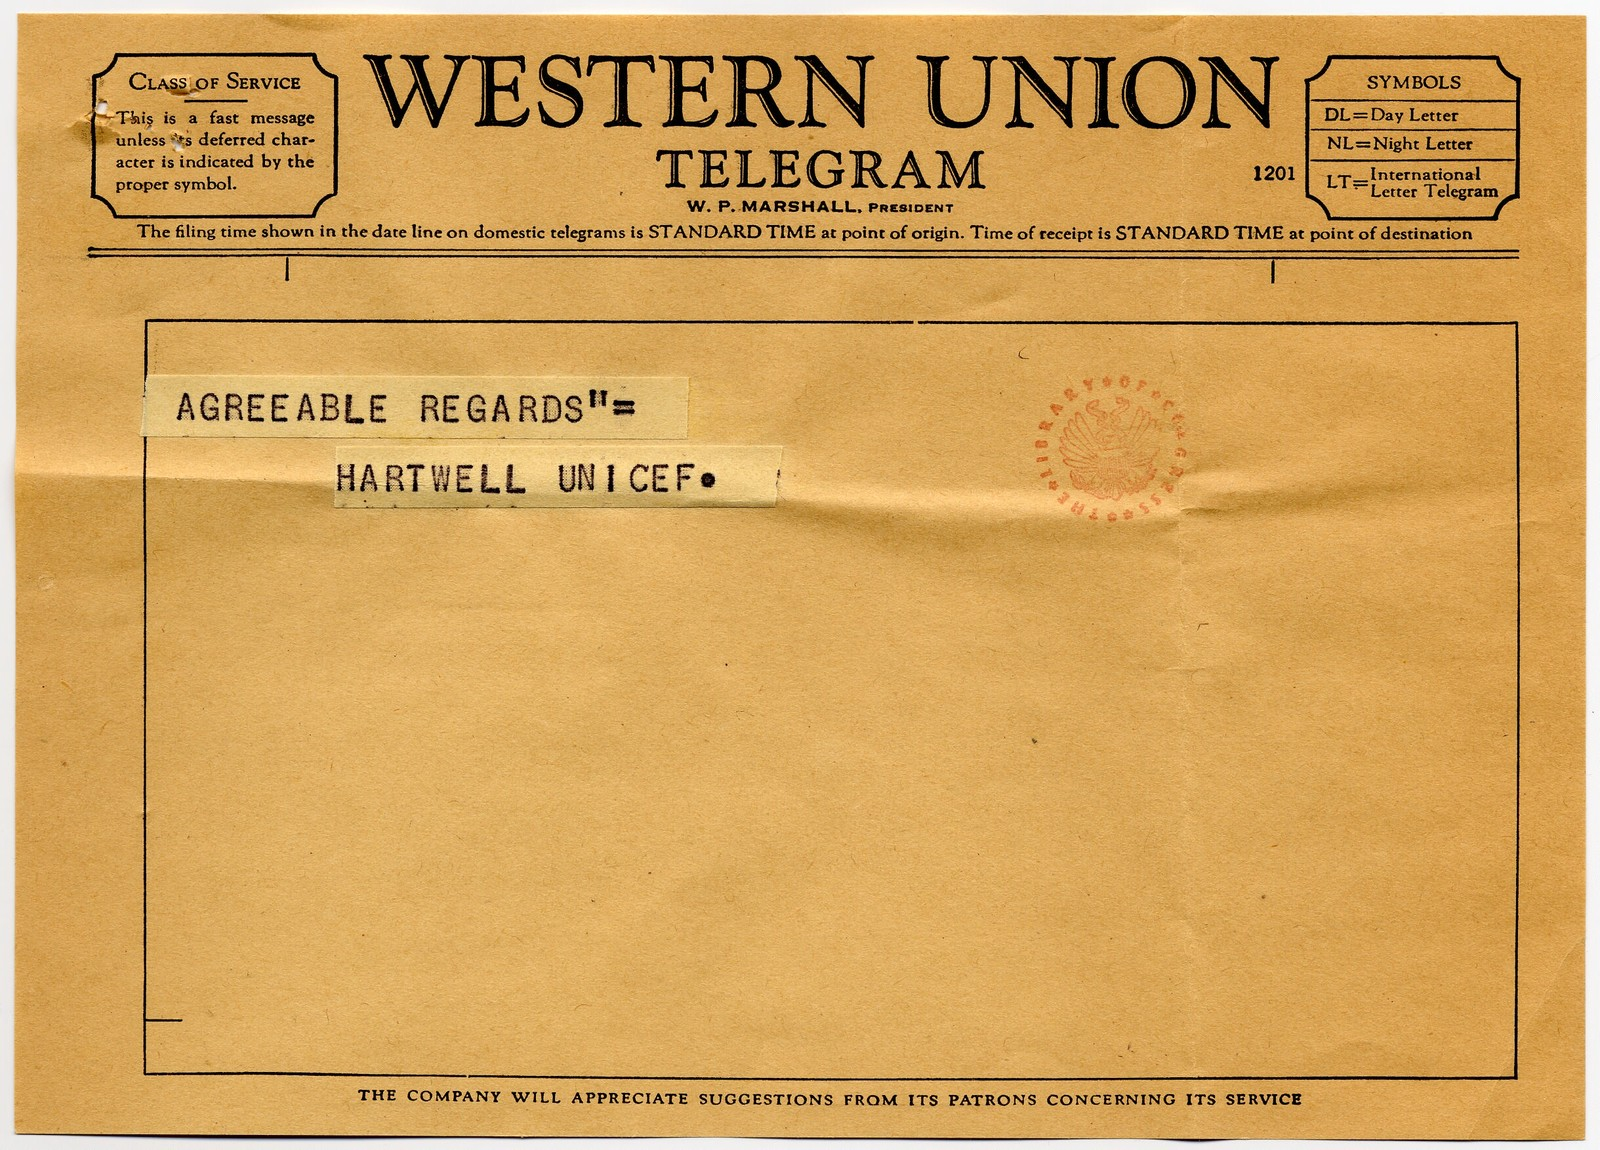 [ Particia] Hartwell [of UNICEF, United Nations, New York] to Danny Kaye, February 9, 1960